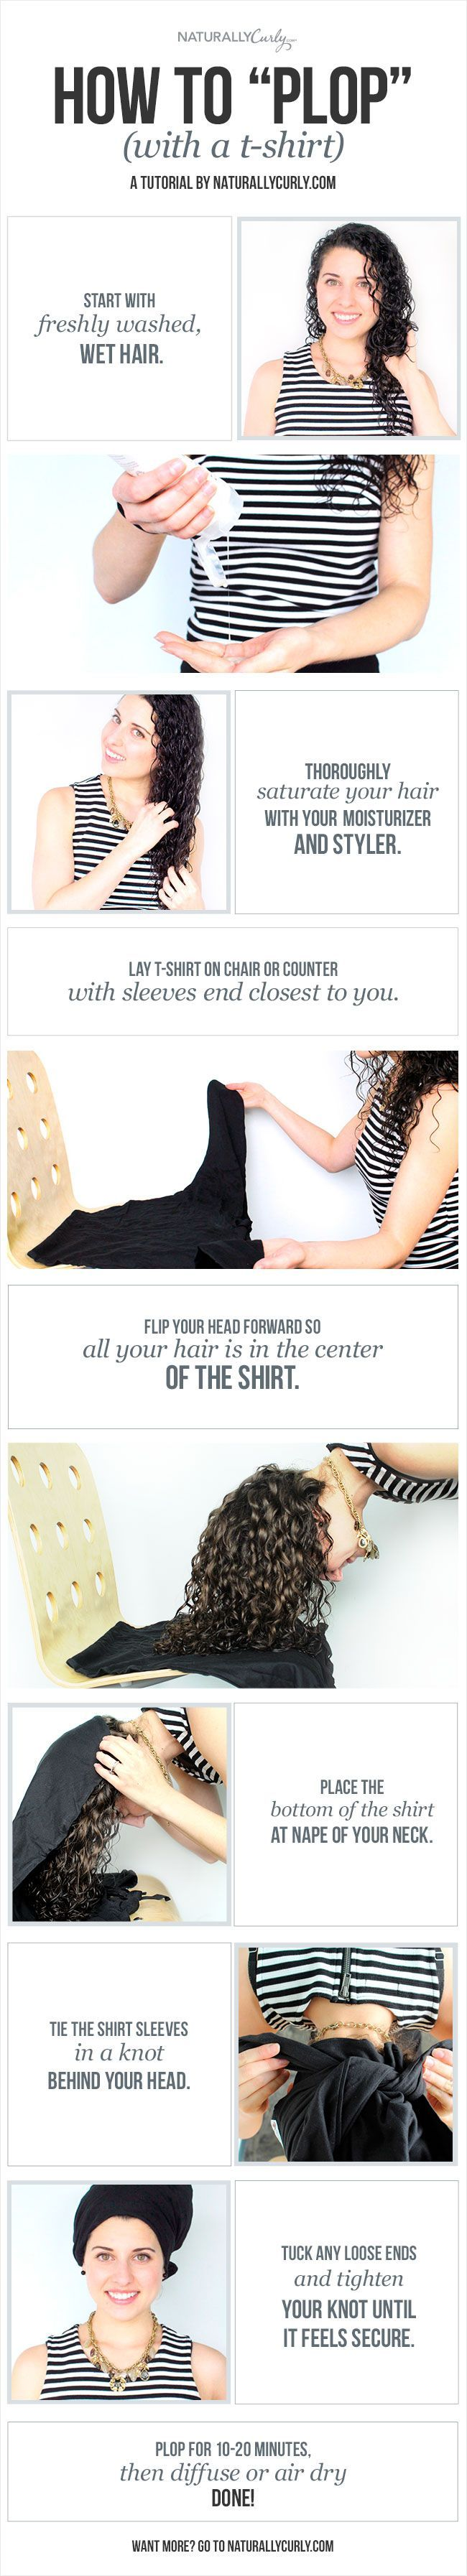 Cut down your air drying time without ruining your curls!